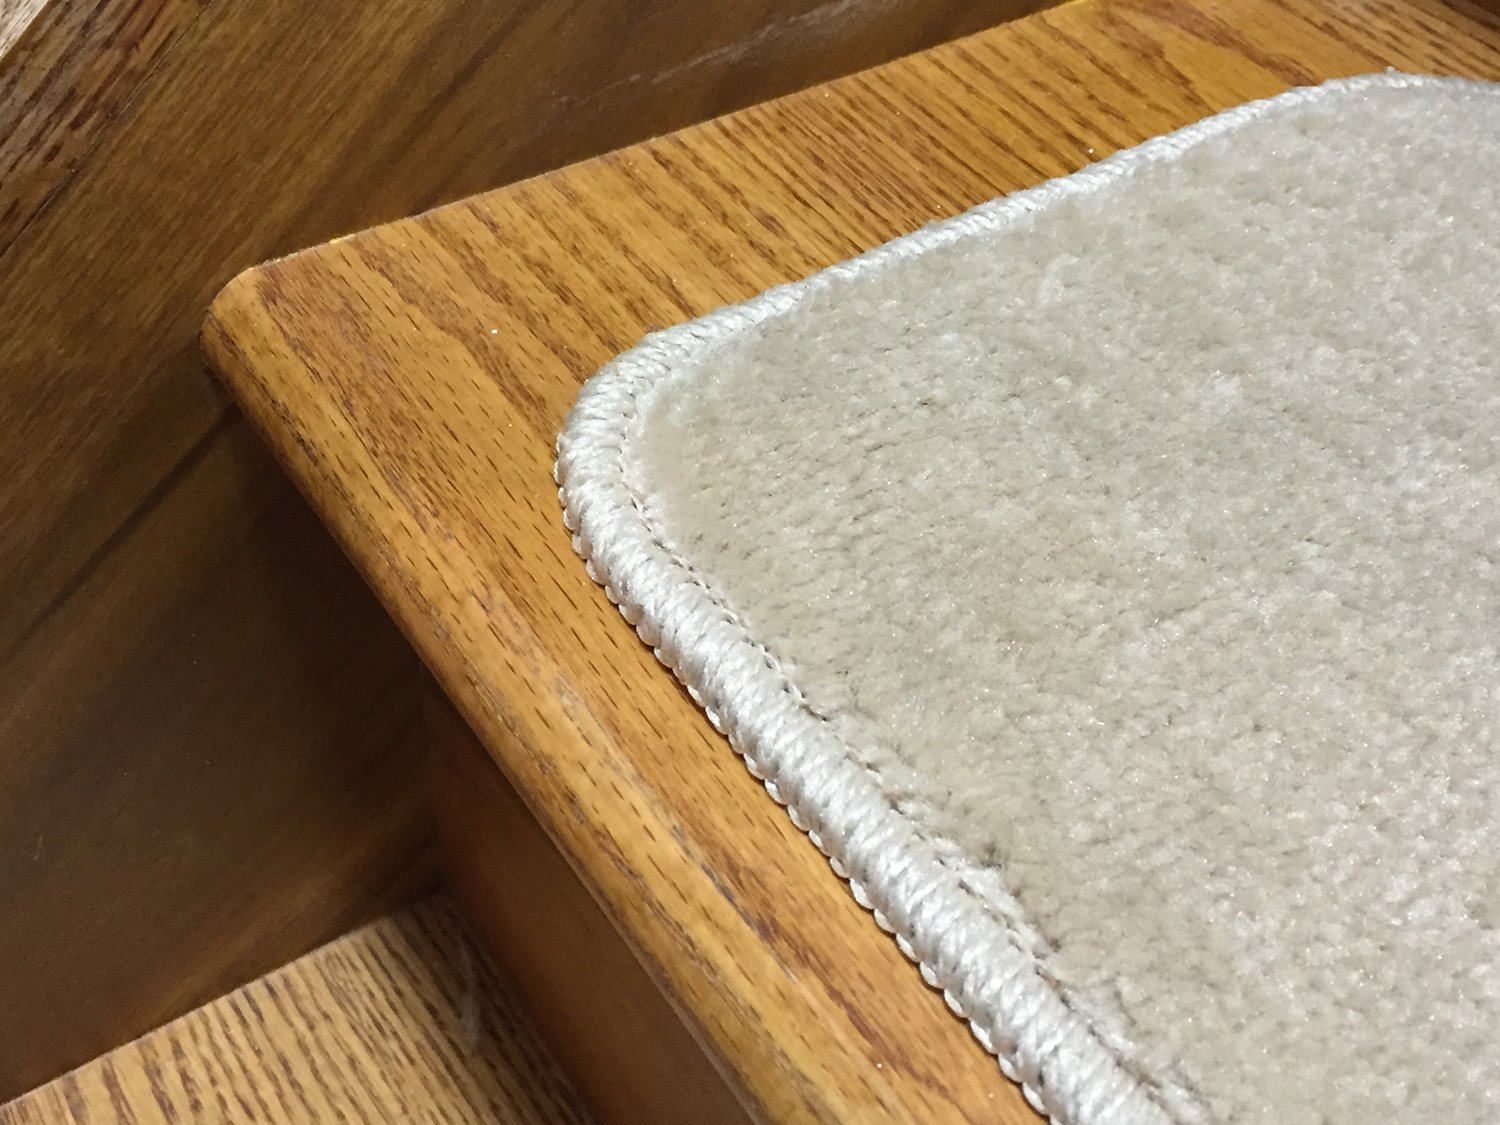 Stair Tread Treads Indoor 7 inch x 24 inch Machine Washable Skid Slip Resistant Carpet Stair Tread Treads Comfy Collection (Set of 13, Dark Cream) by RugStylesOnline (Image #5)